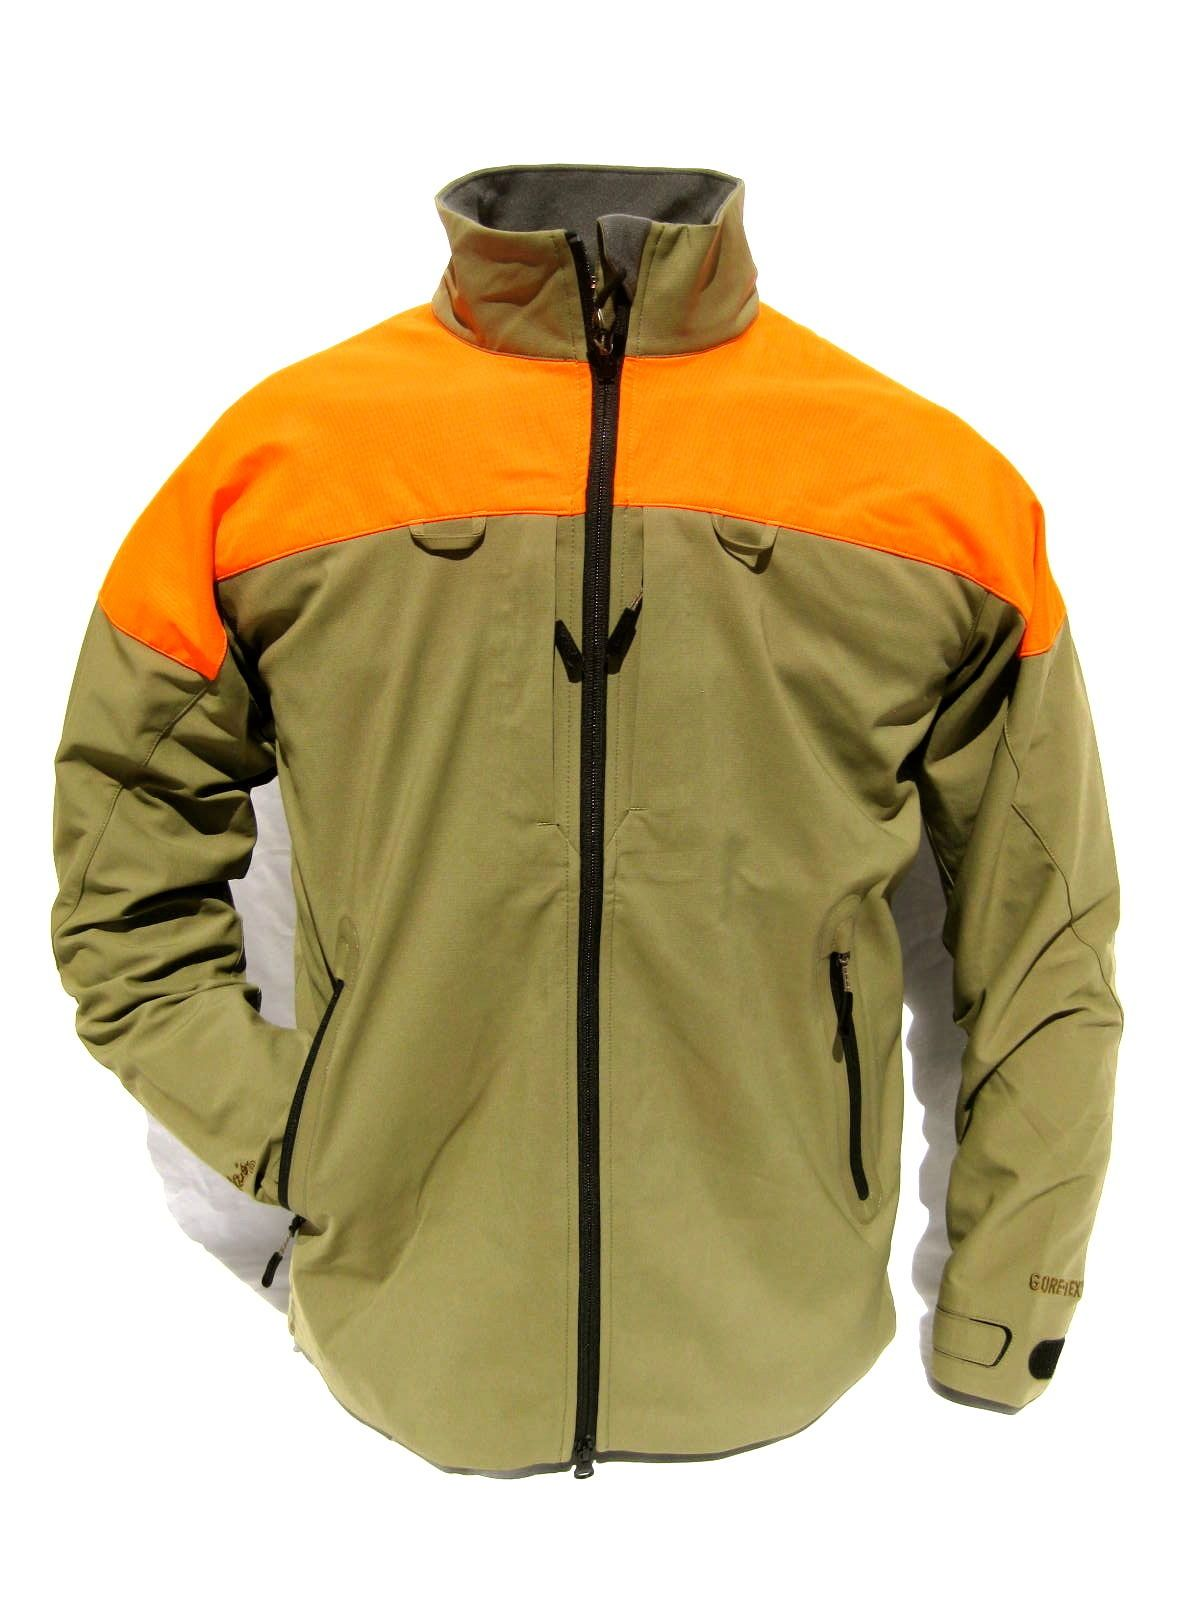 a849235b6c09b Cabelas-GORE-TEX-Windstopper-Upland-Blaze-Waterproof-Softshell-Hunting -Jacket